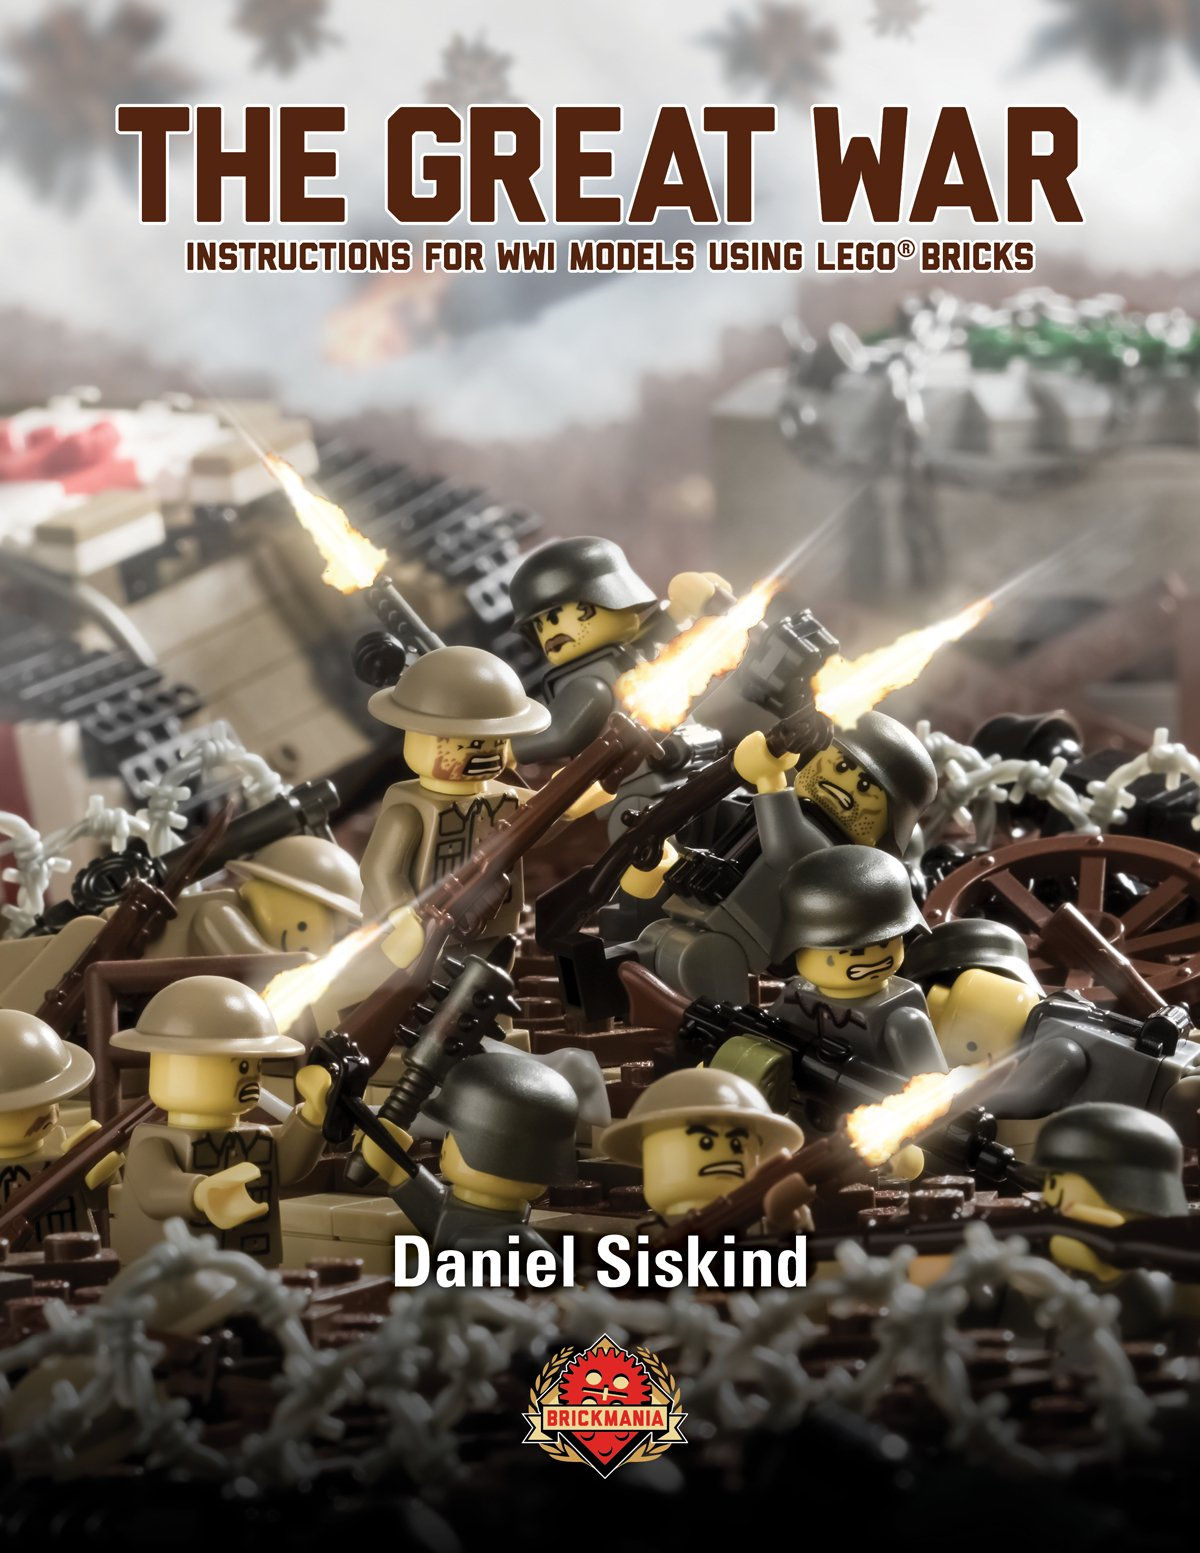 The Great War: Instructions for WWI Models Using LEGO